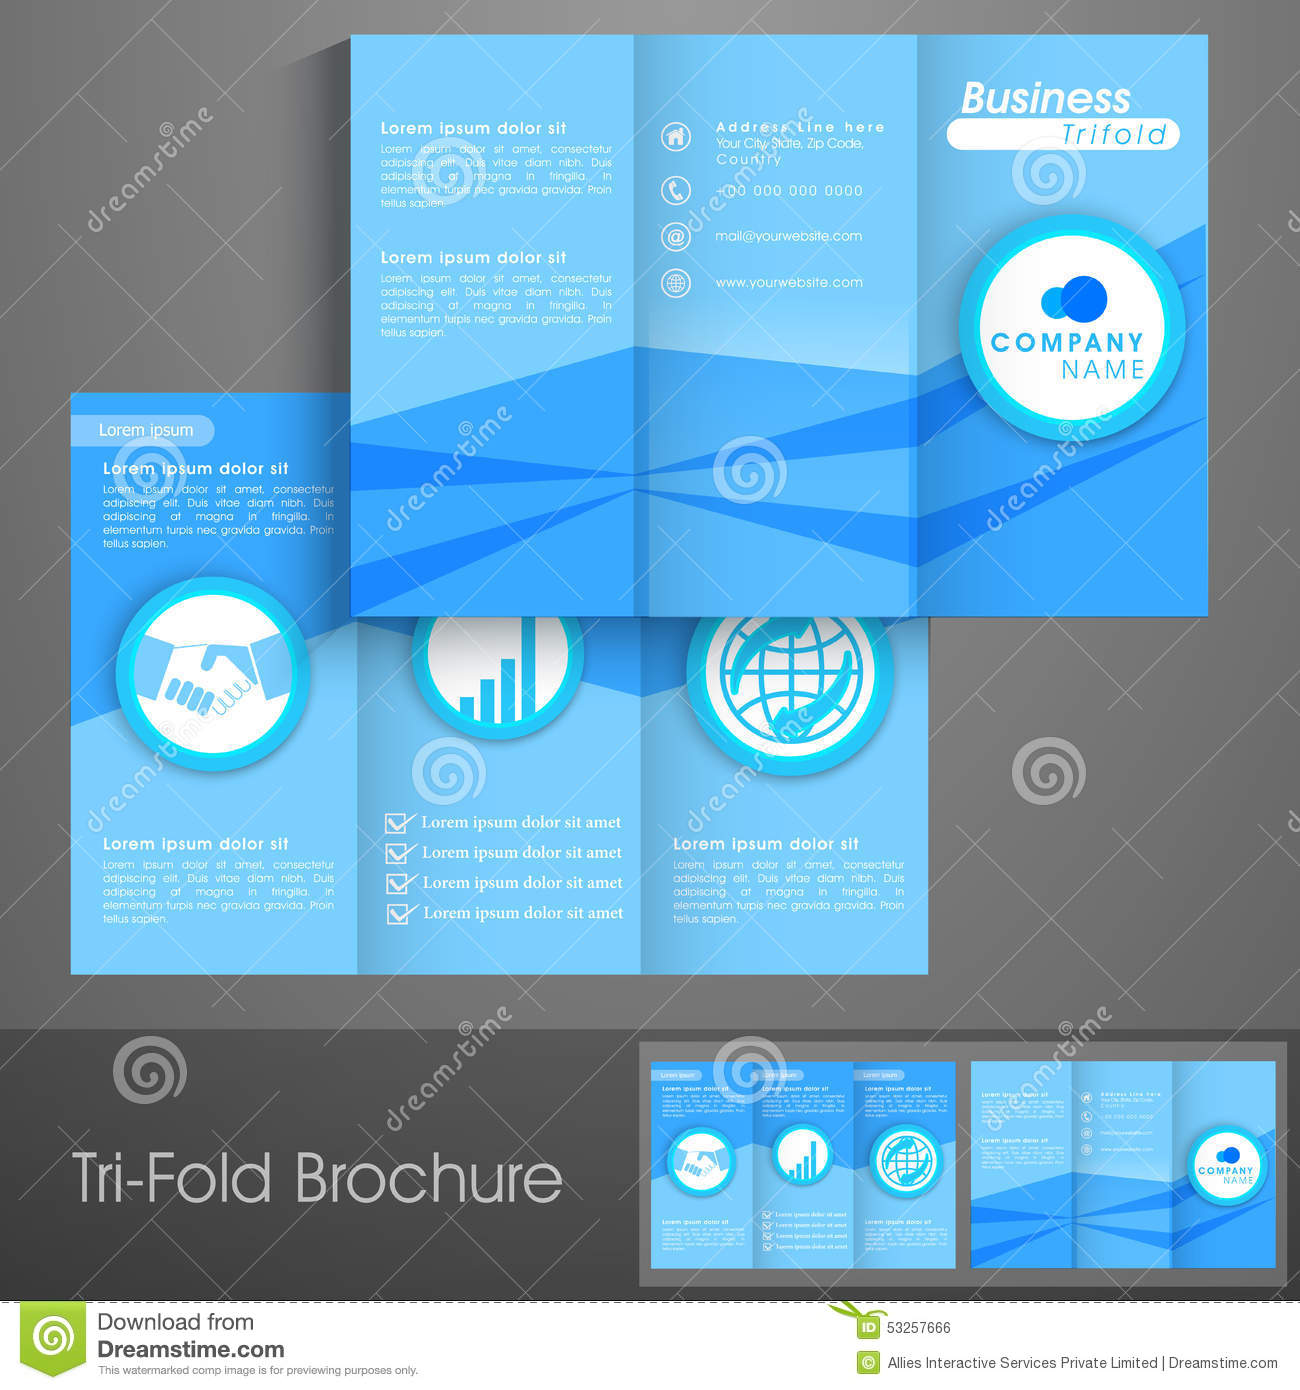 Professional trifold brochure template or flyer for for Professional brochure design templates